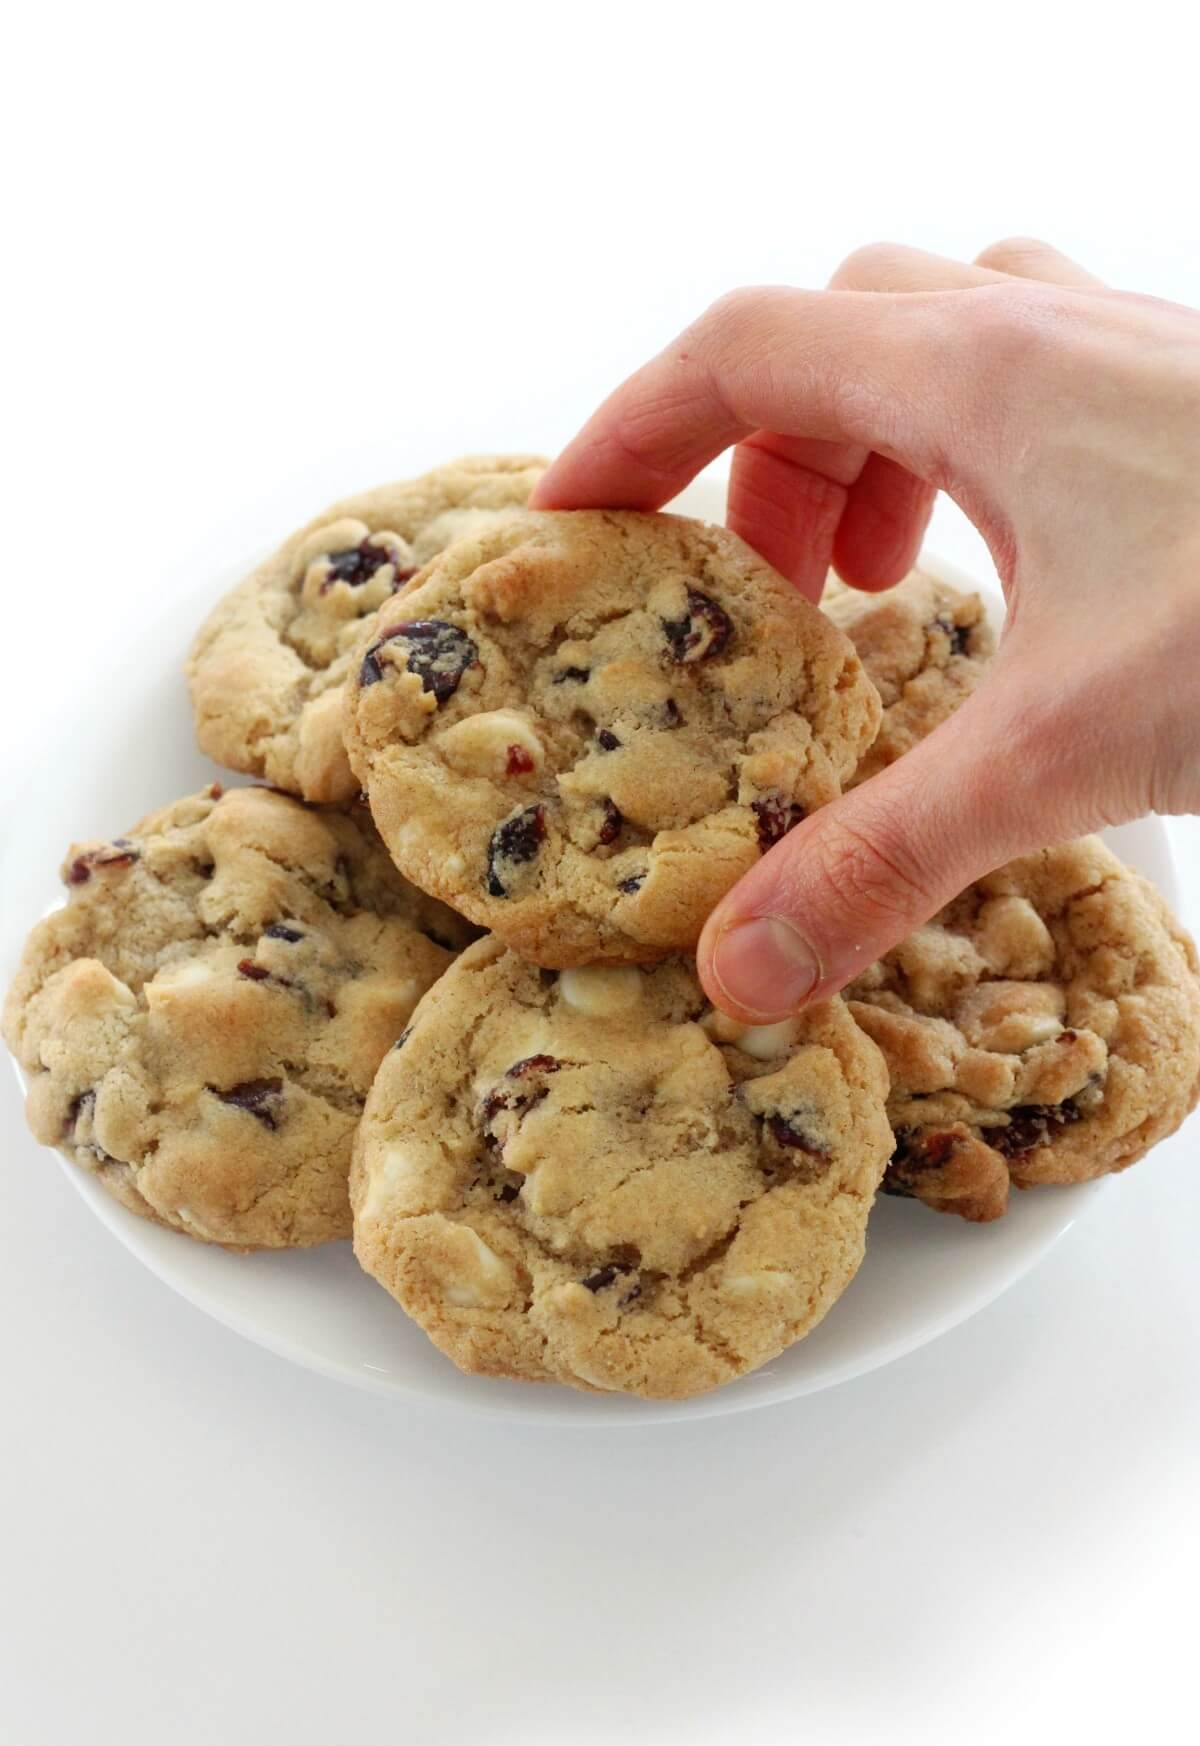 hand grabbing a gluten-free white chocolate cranberry cookies from plate